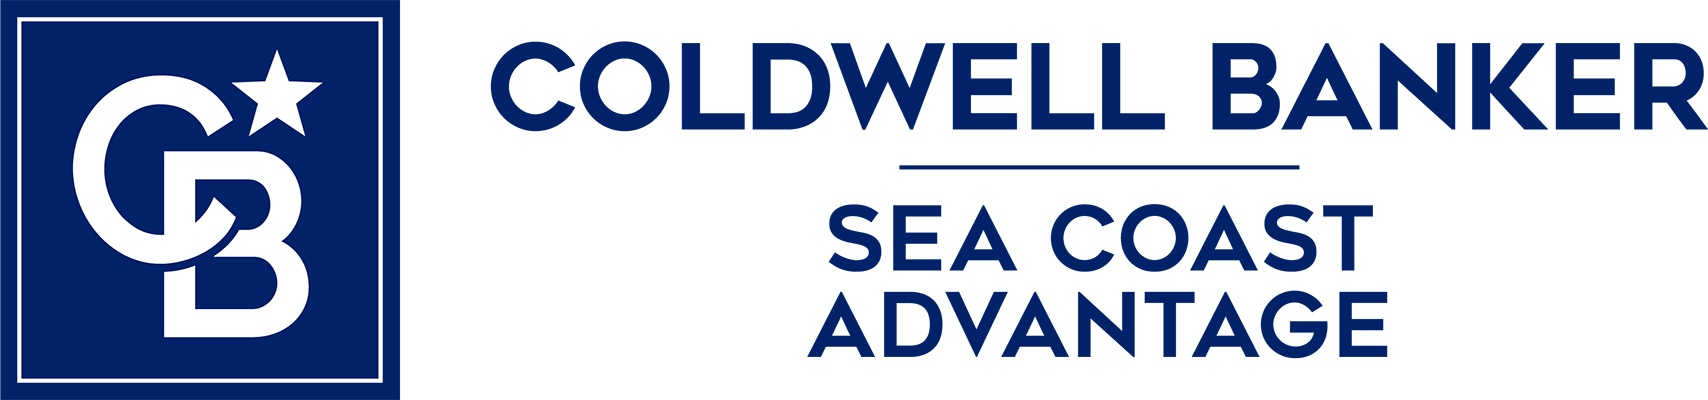 Deborah Wallin - Coldwell Banker Sea Coast Advantage Realty